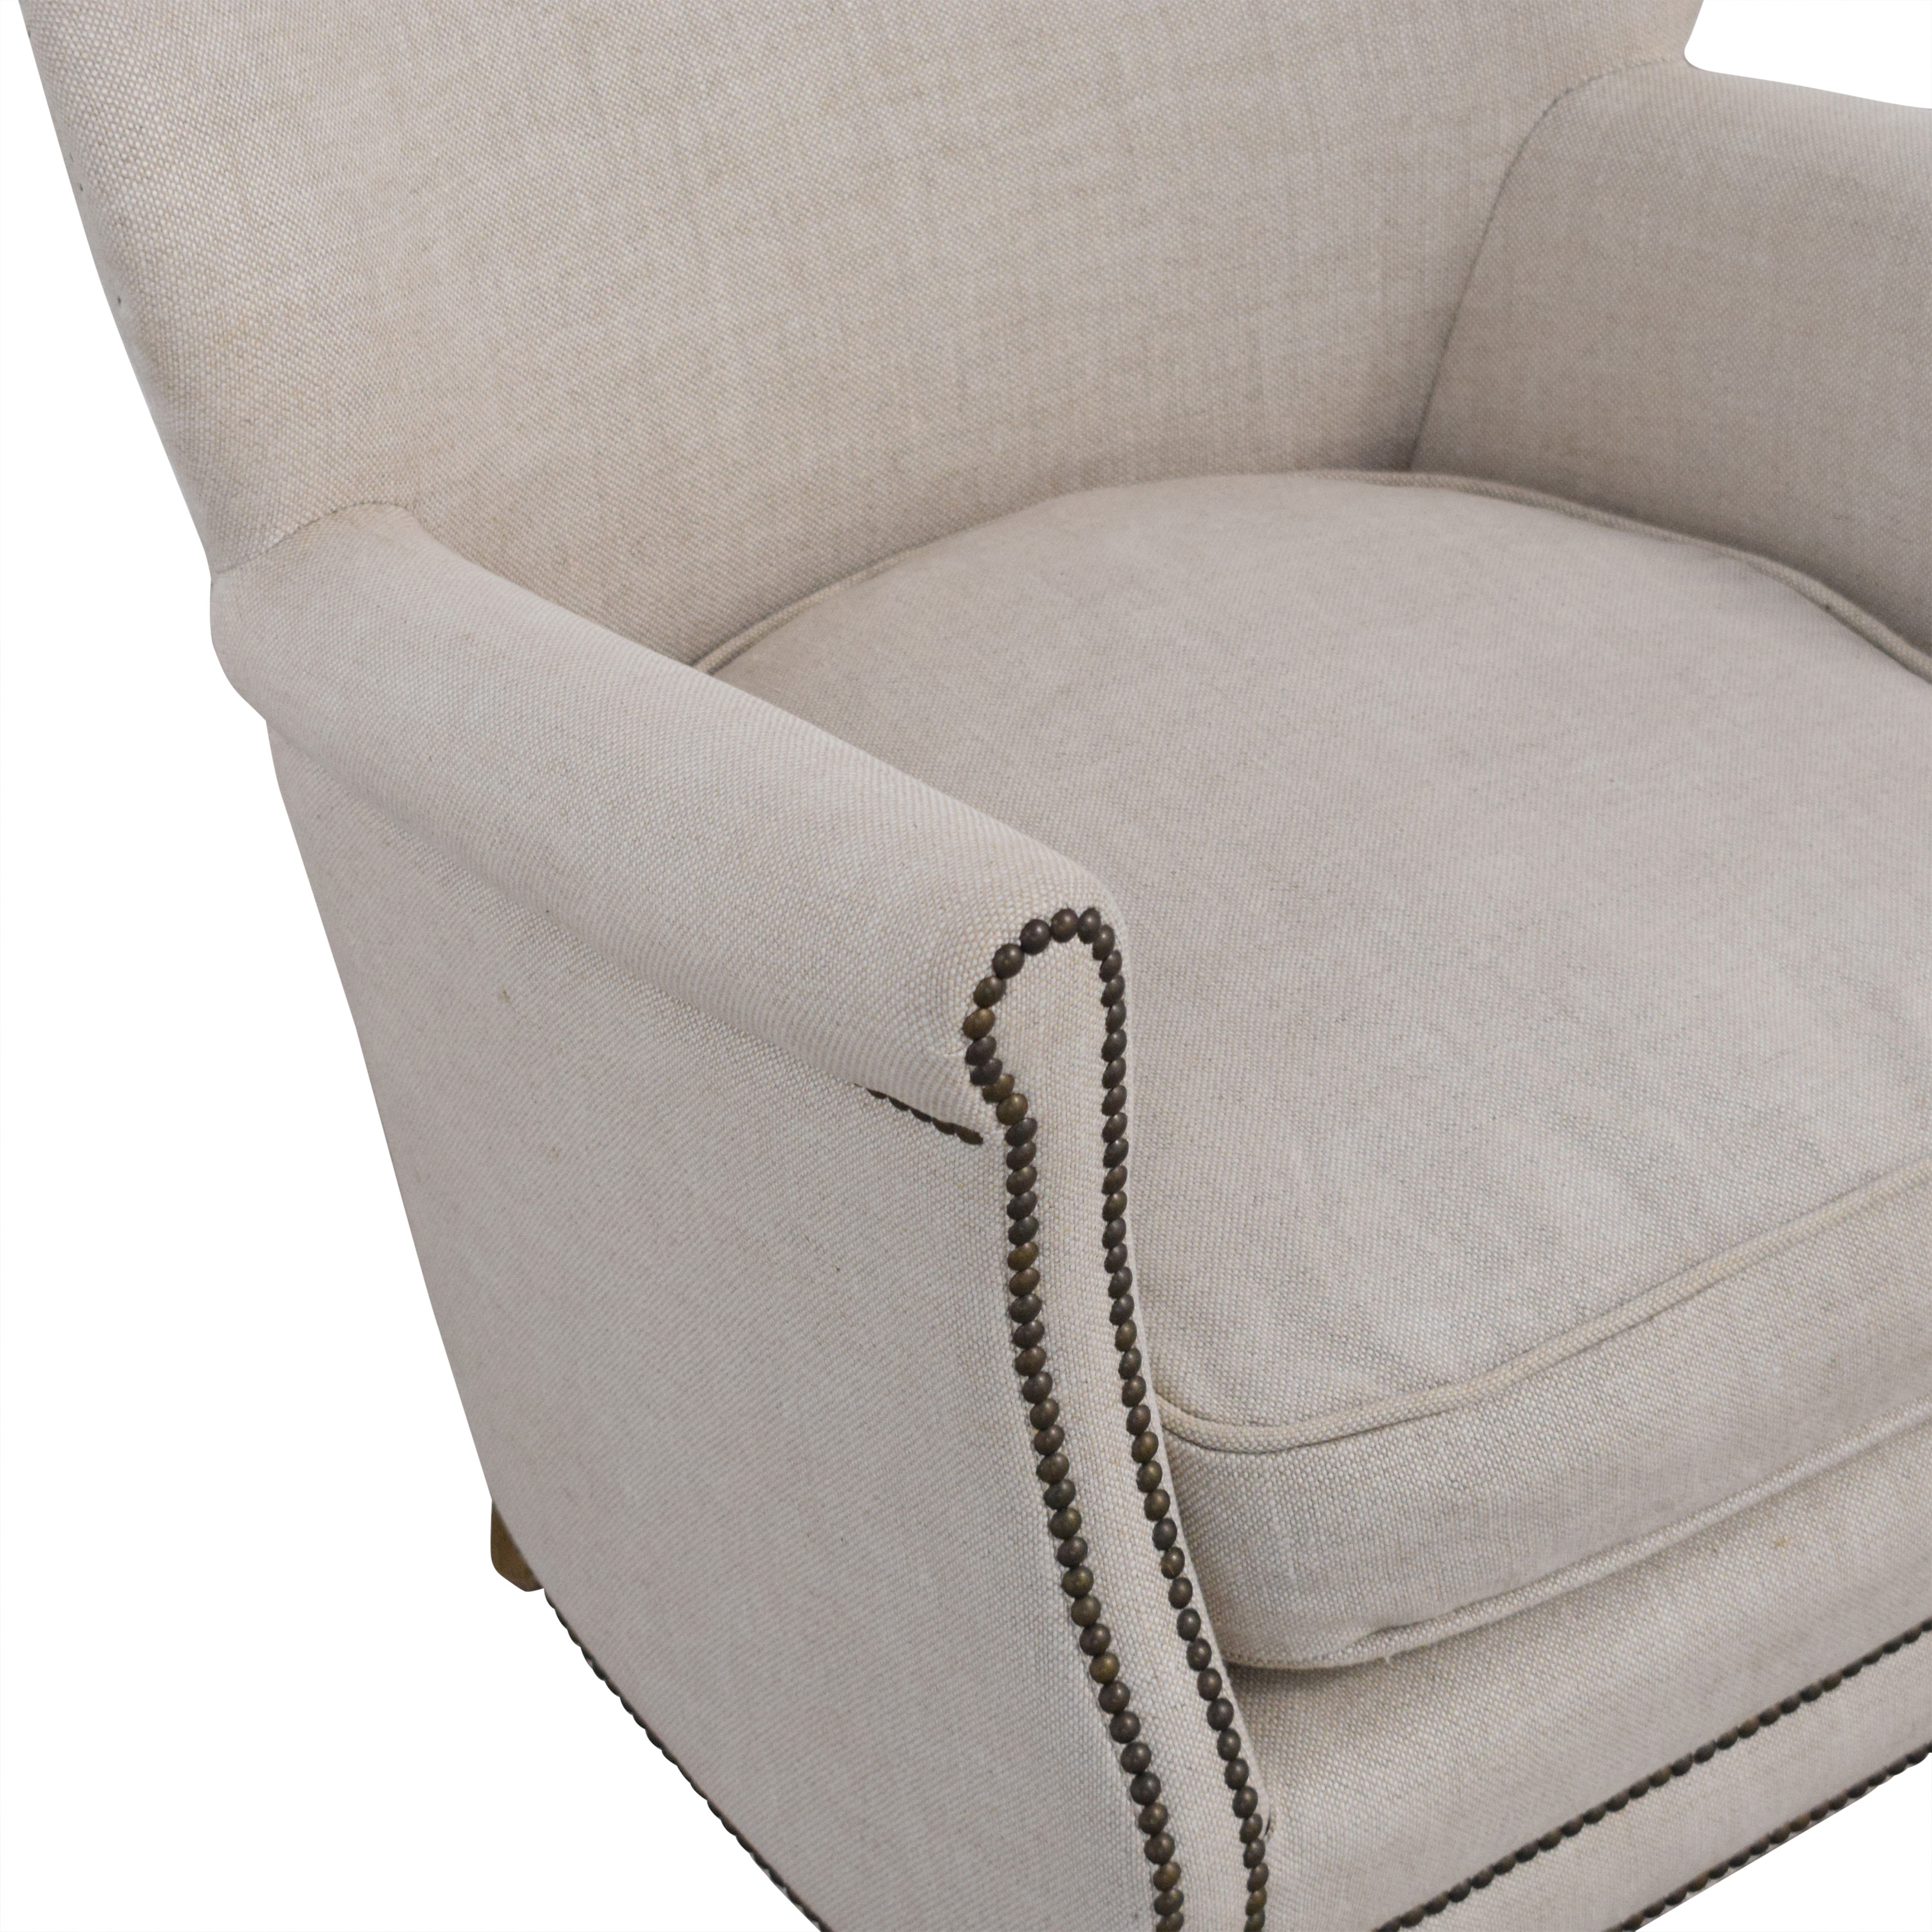 Restoration Hardware Restoration Hardware Professors Chair with Nailheads coupon